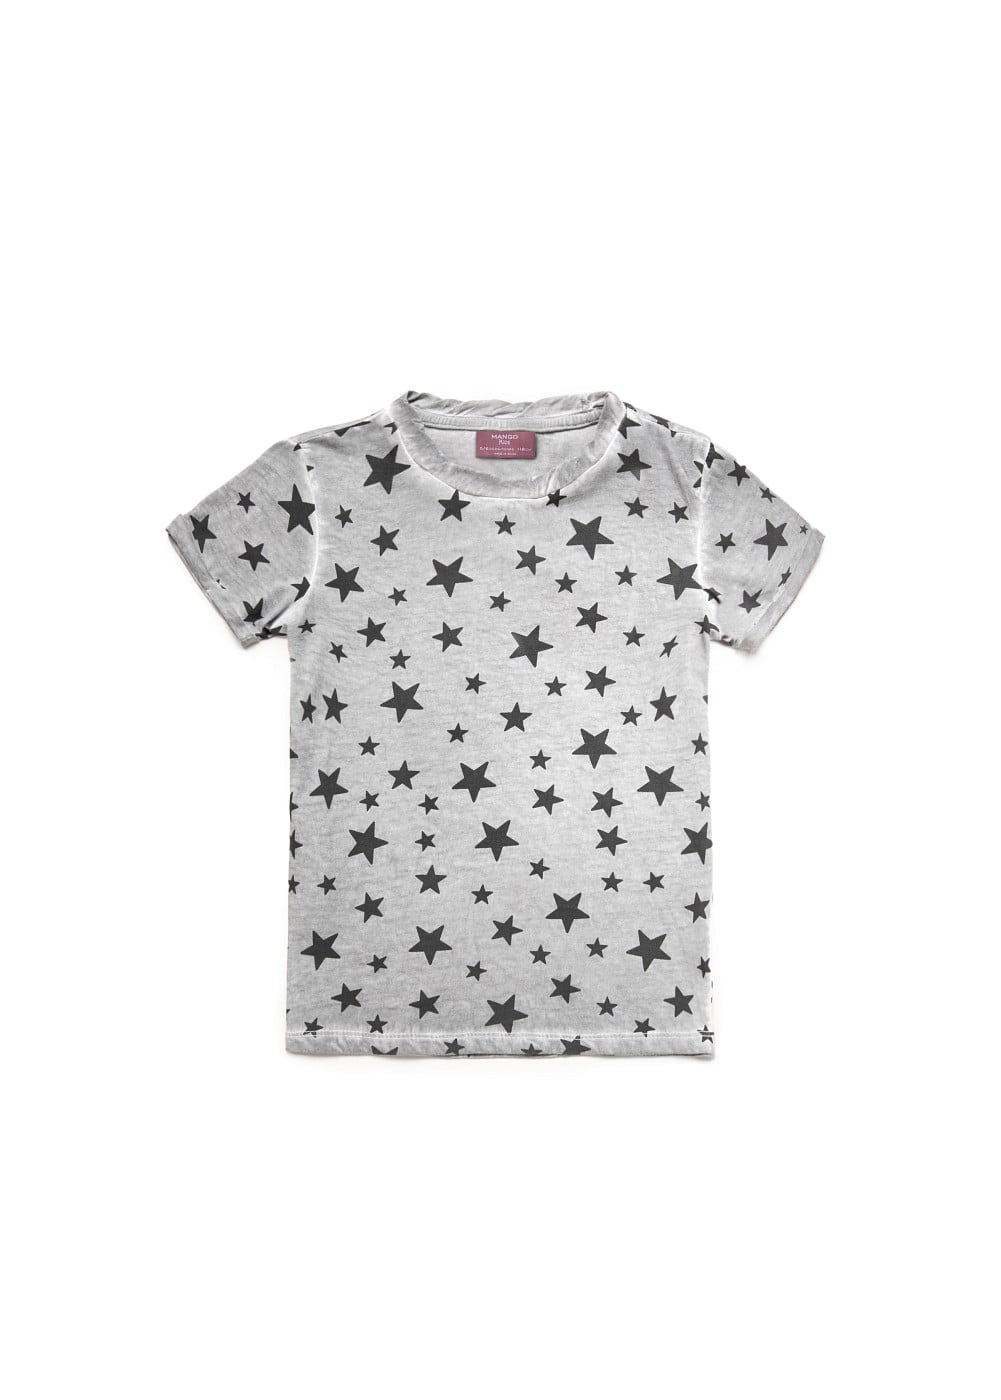 Washed effect stars print t-shirt | MANGO